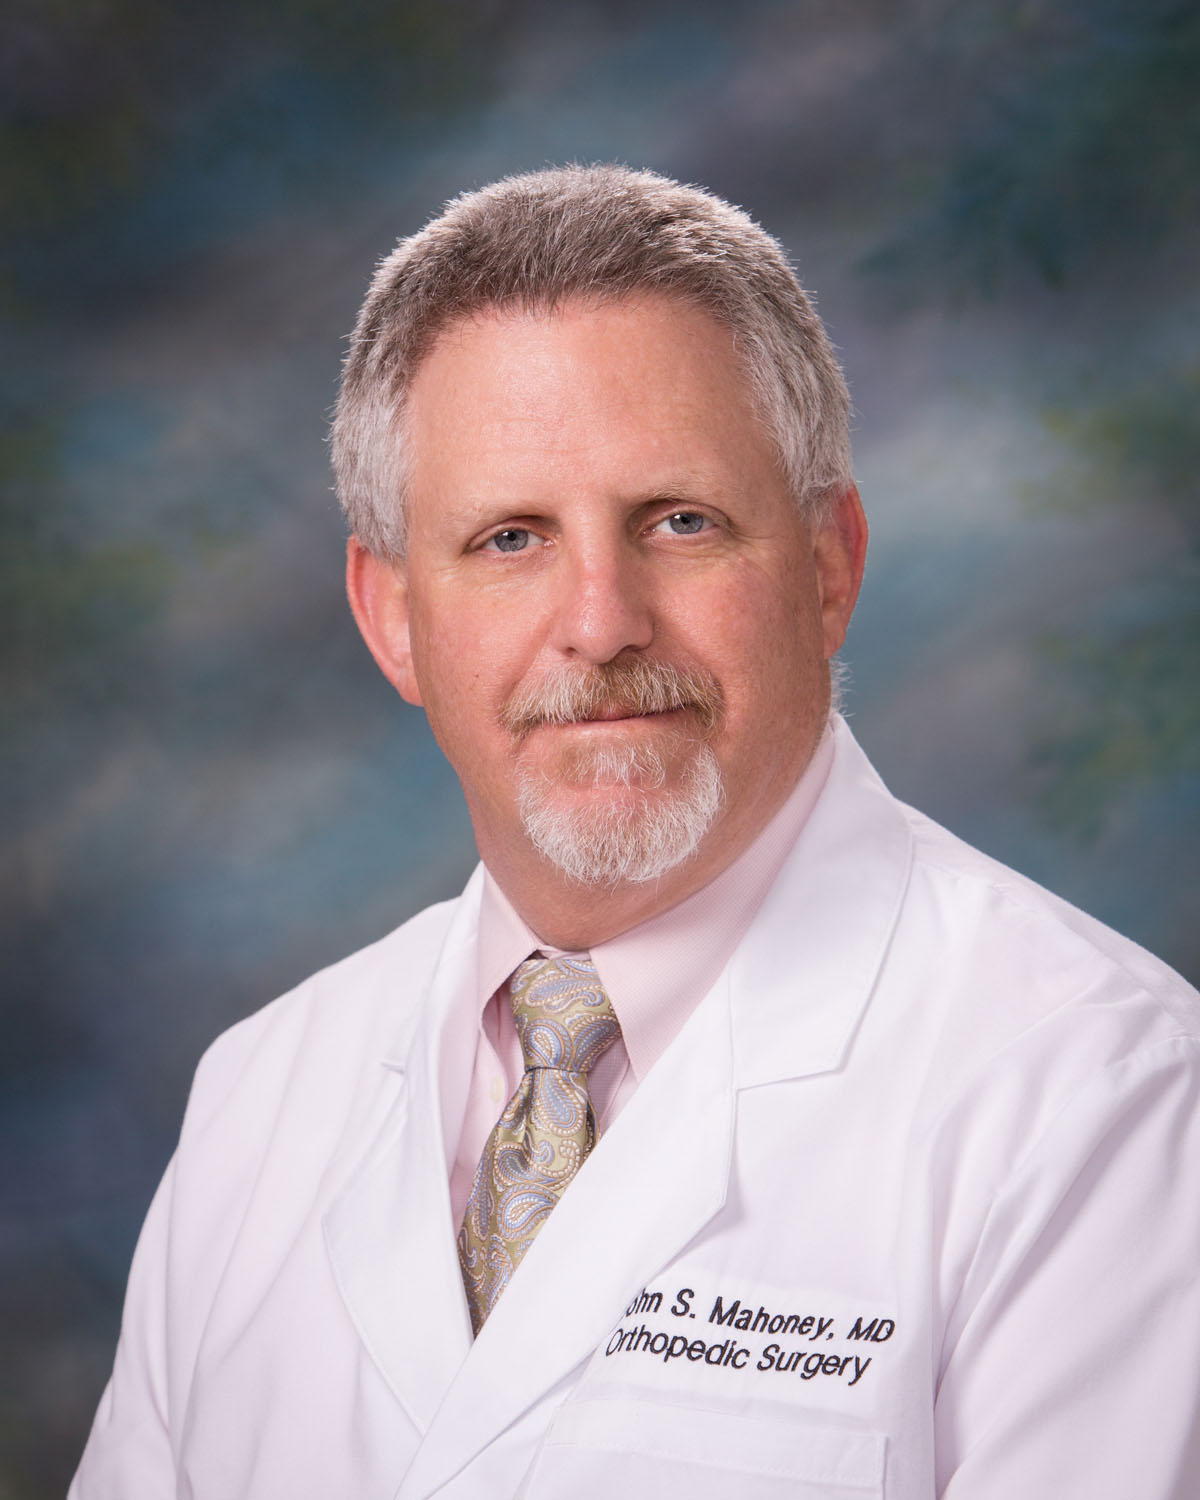 Dr John Mahoney Orthopedic Surgeon Spectrum Medical